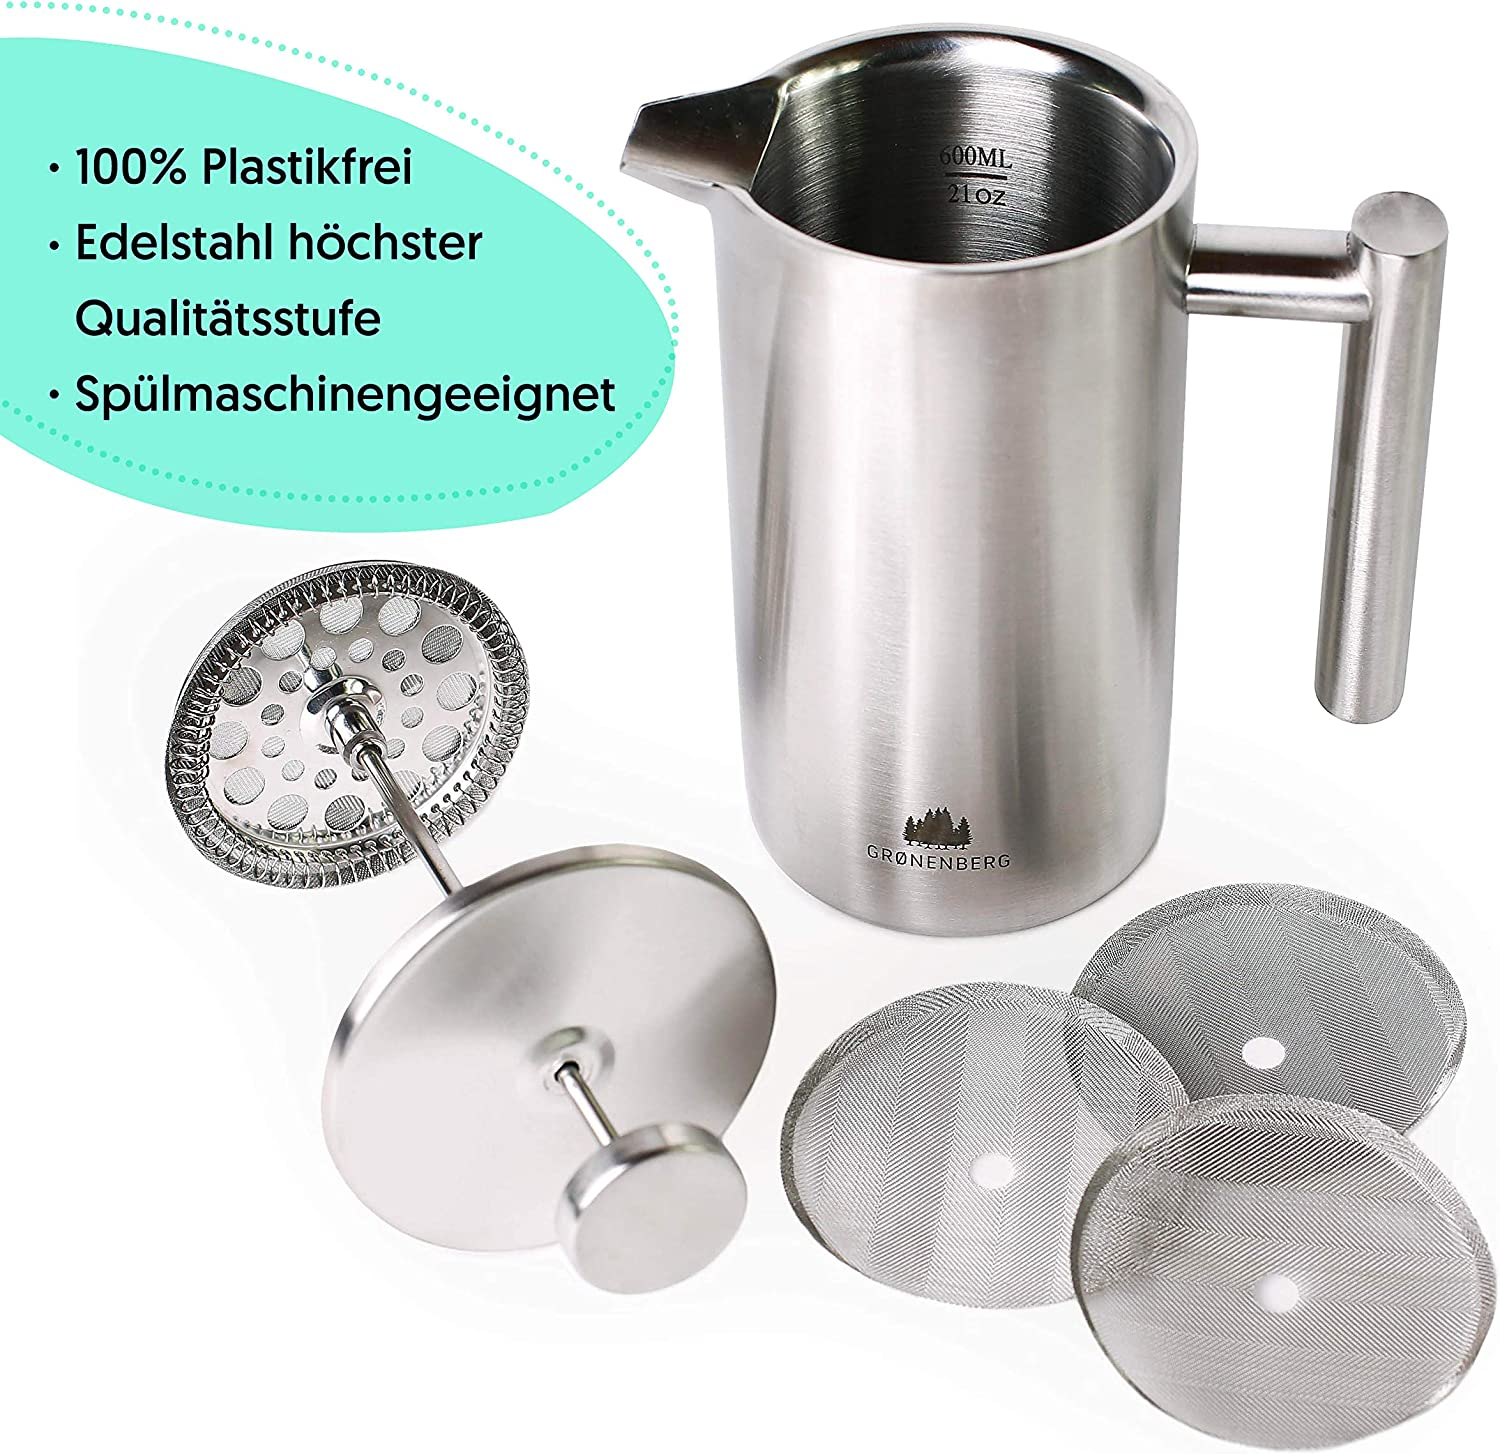 3 Cup Stainless Steel Coffee Press French Press Coffee Maker 0,6 Litre Double-walled /& incl Groenenberg Cafeti/ère replacement filter